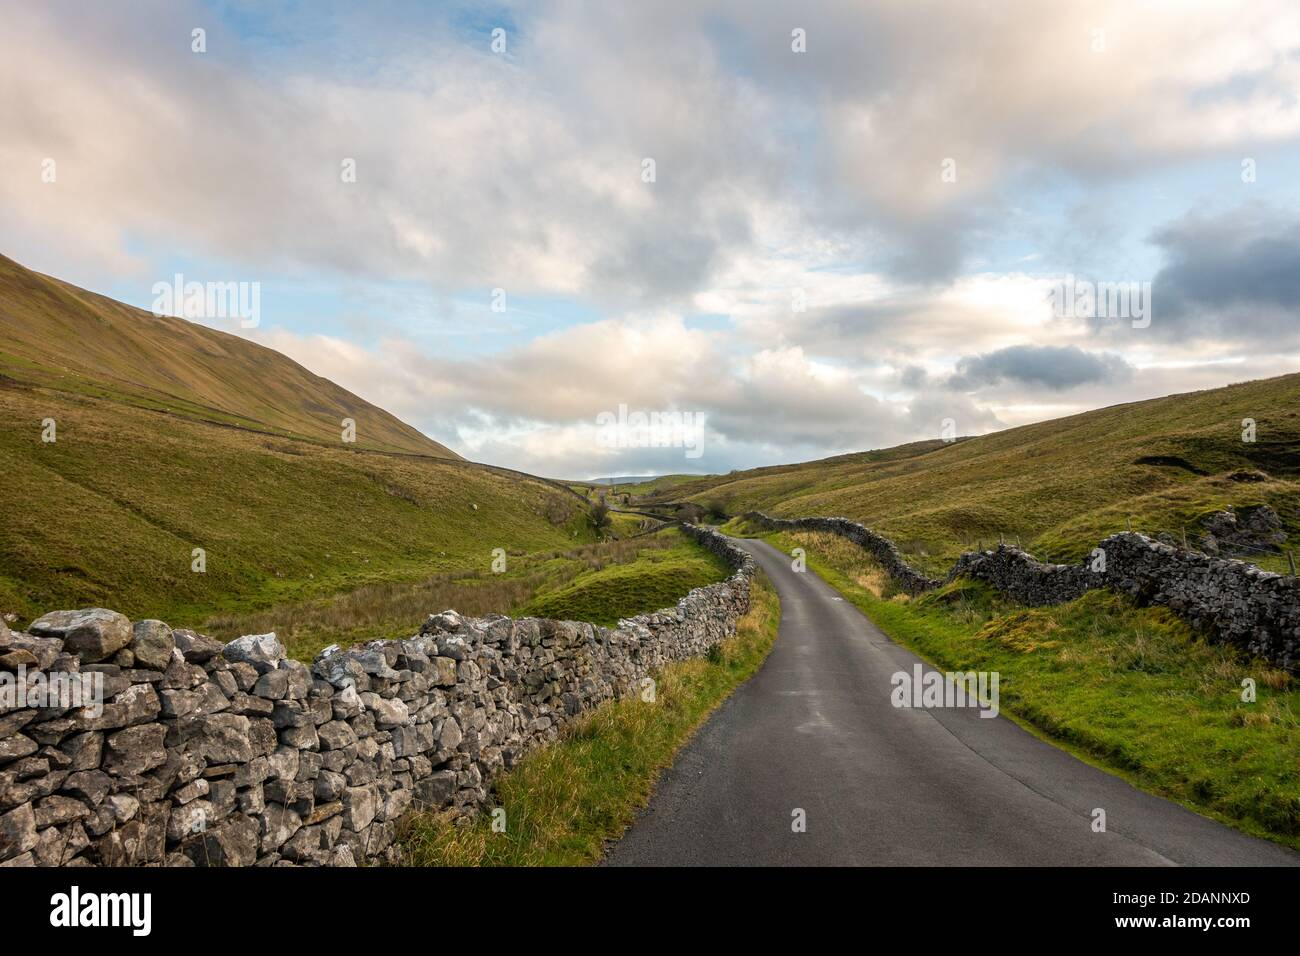 UK landscape: View looking north up the picturesque country lane of Barbondale Road, lined with drystone wall, Cumbria - Yorkshire Dales National Park Stock Photo